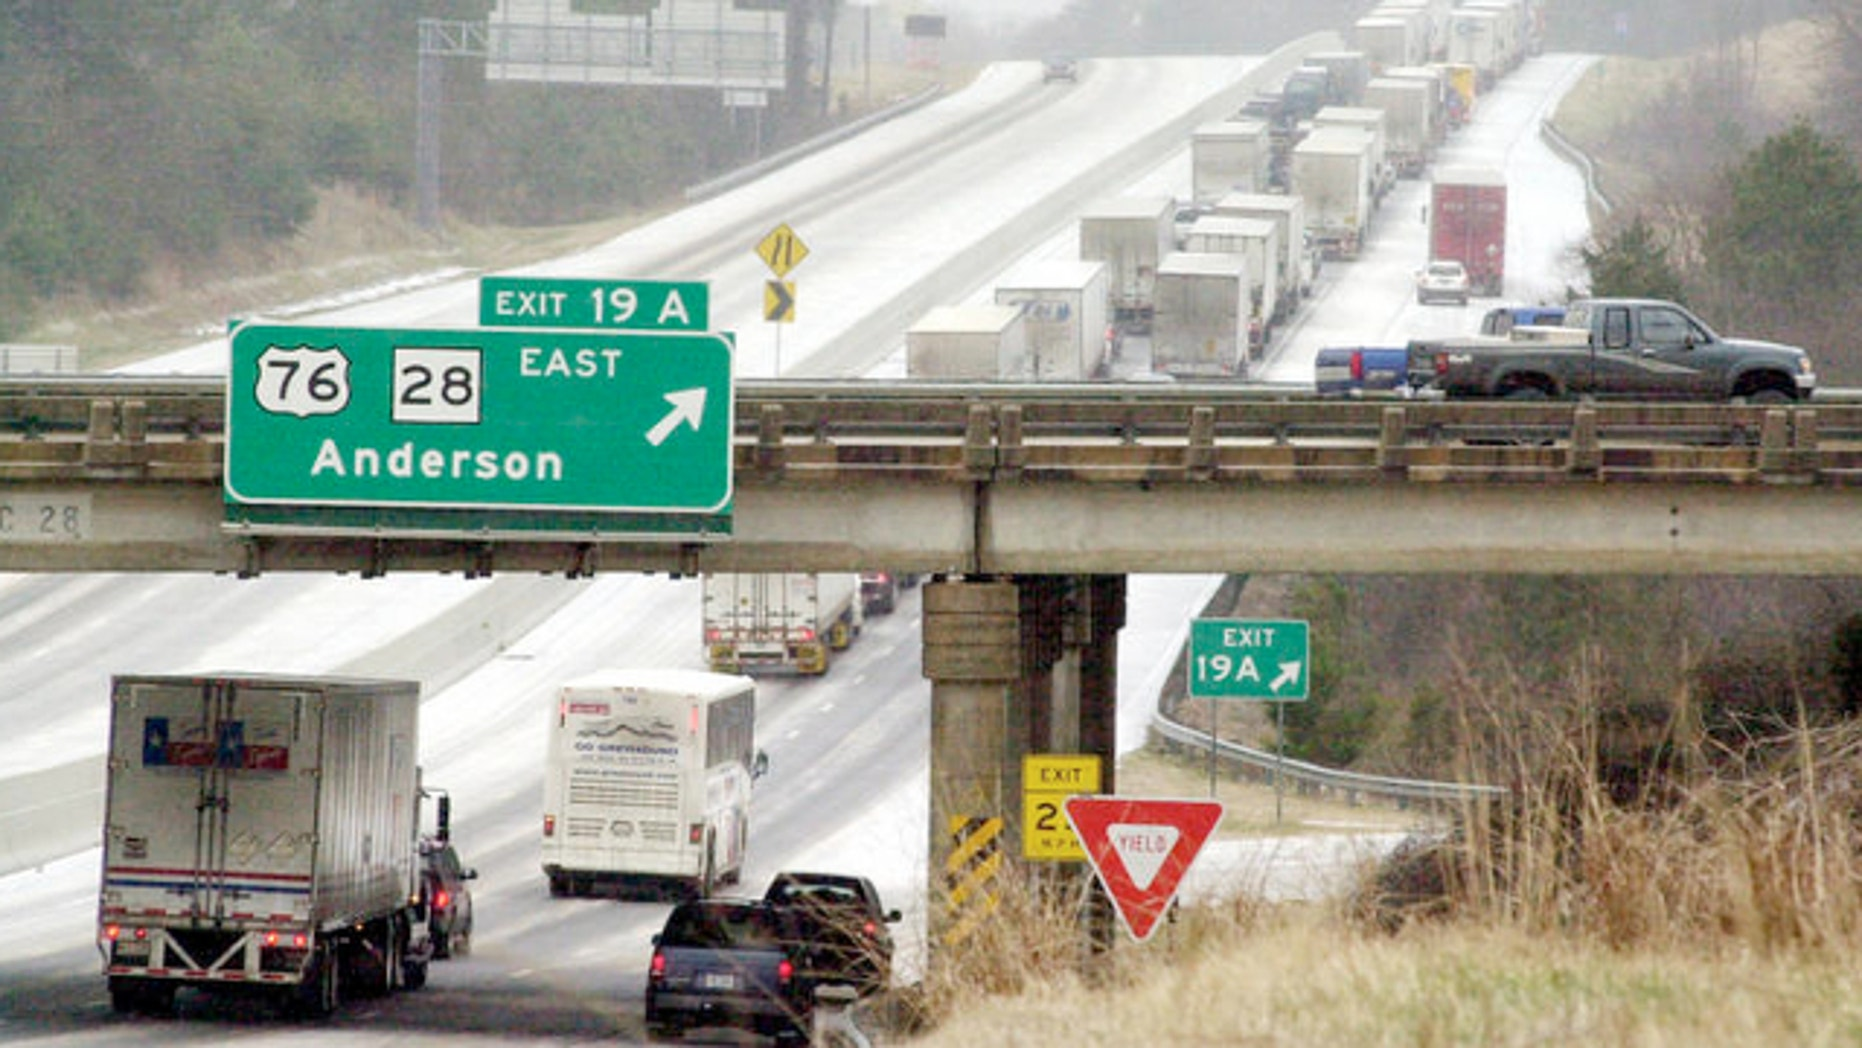 Jan. 29, 2005: This photo shows traffic on Interstate 85 in Anderson, South Carolina.